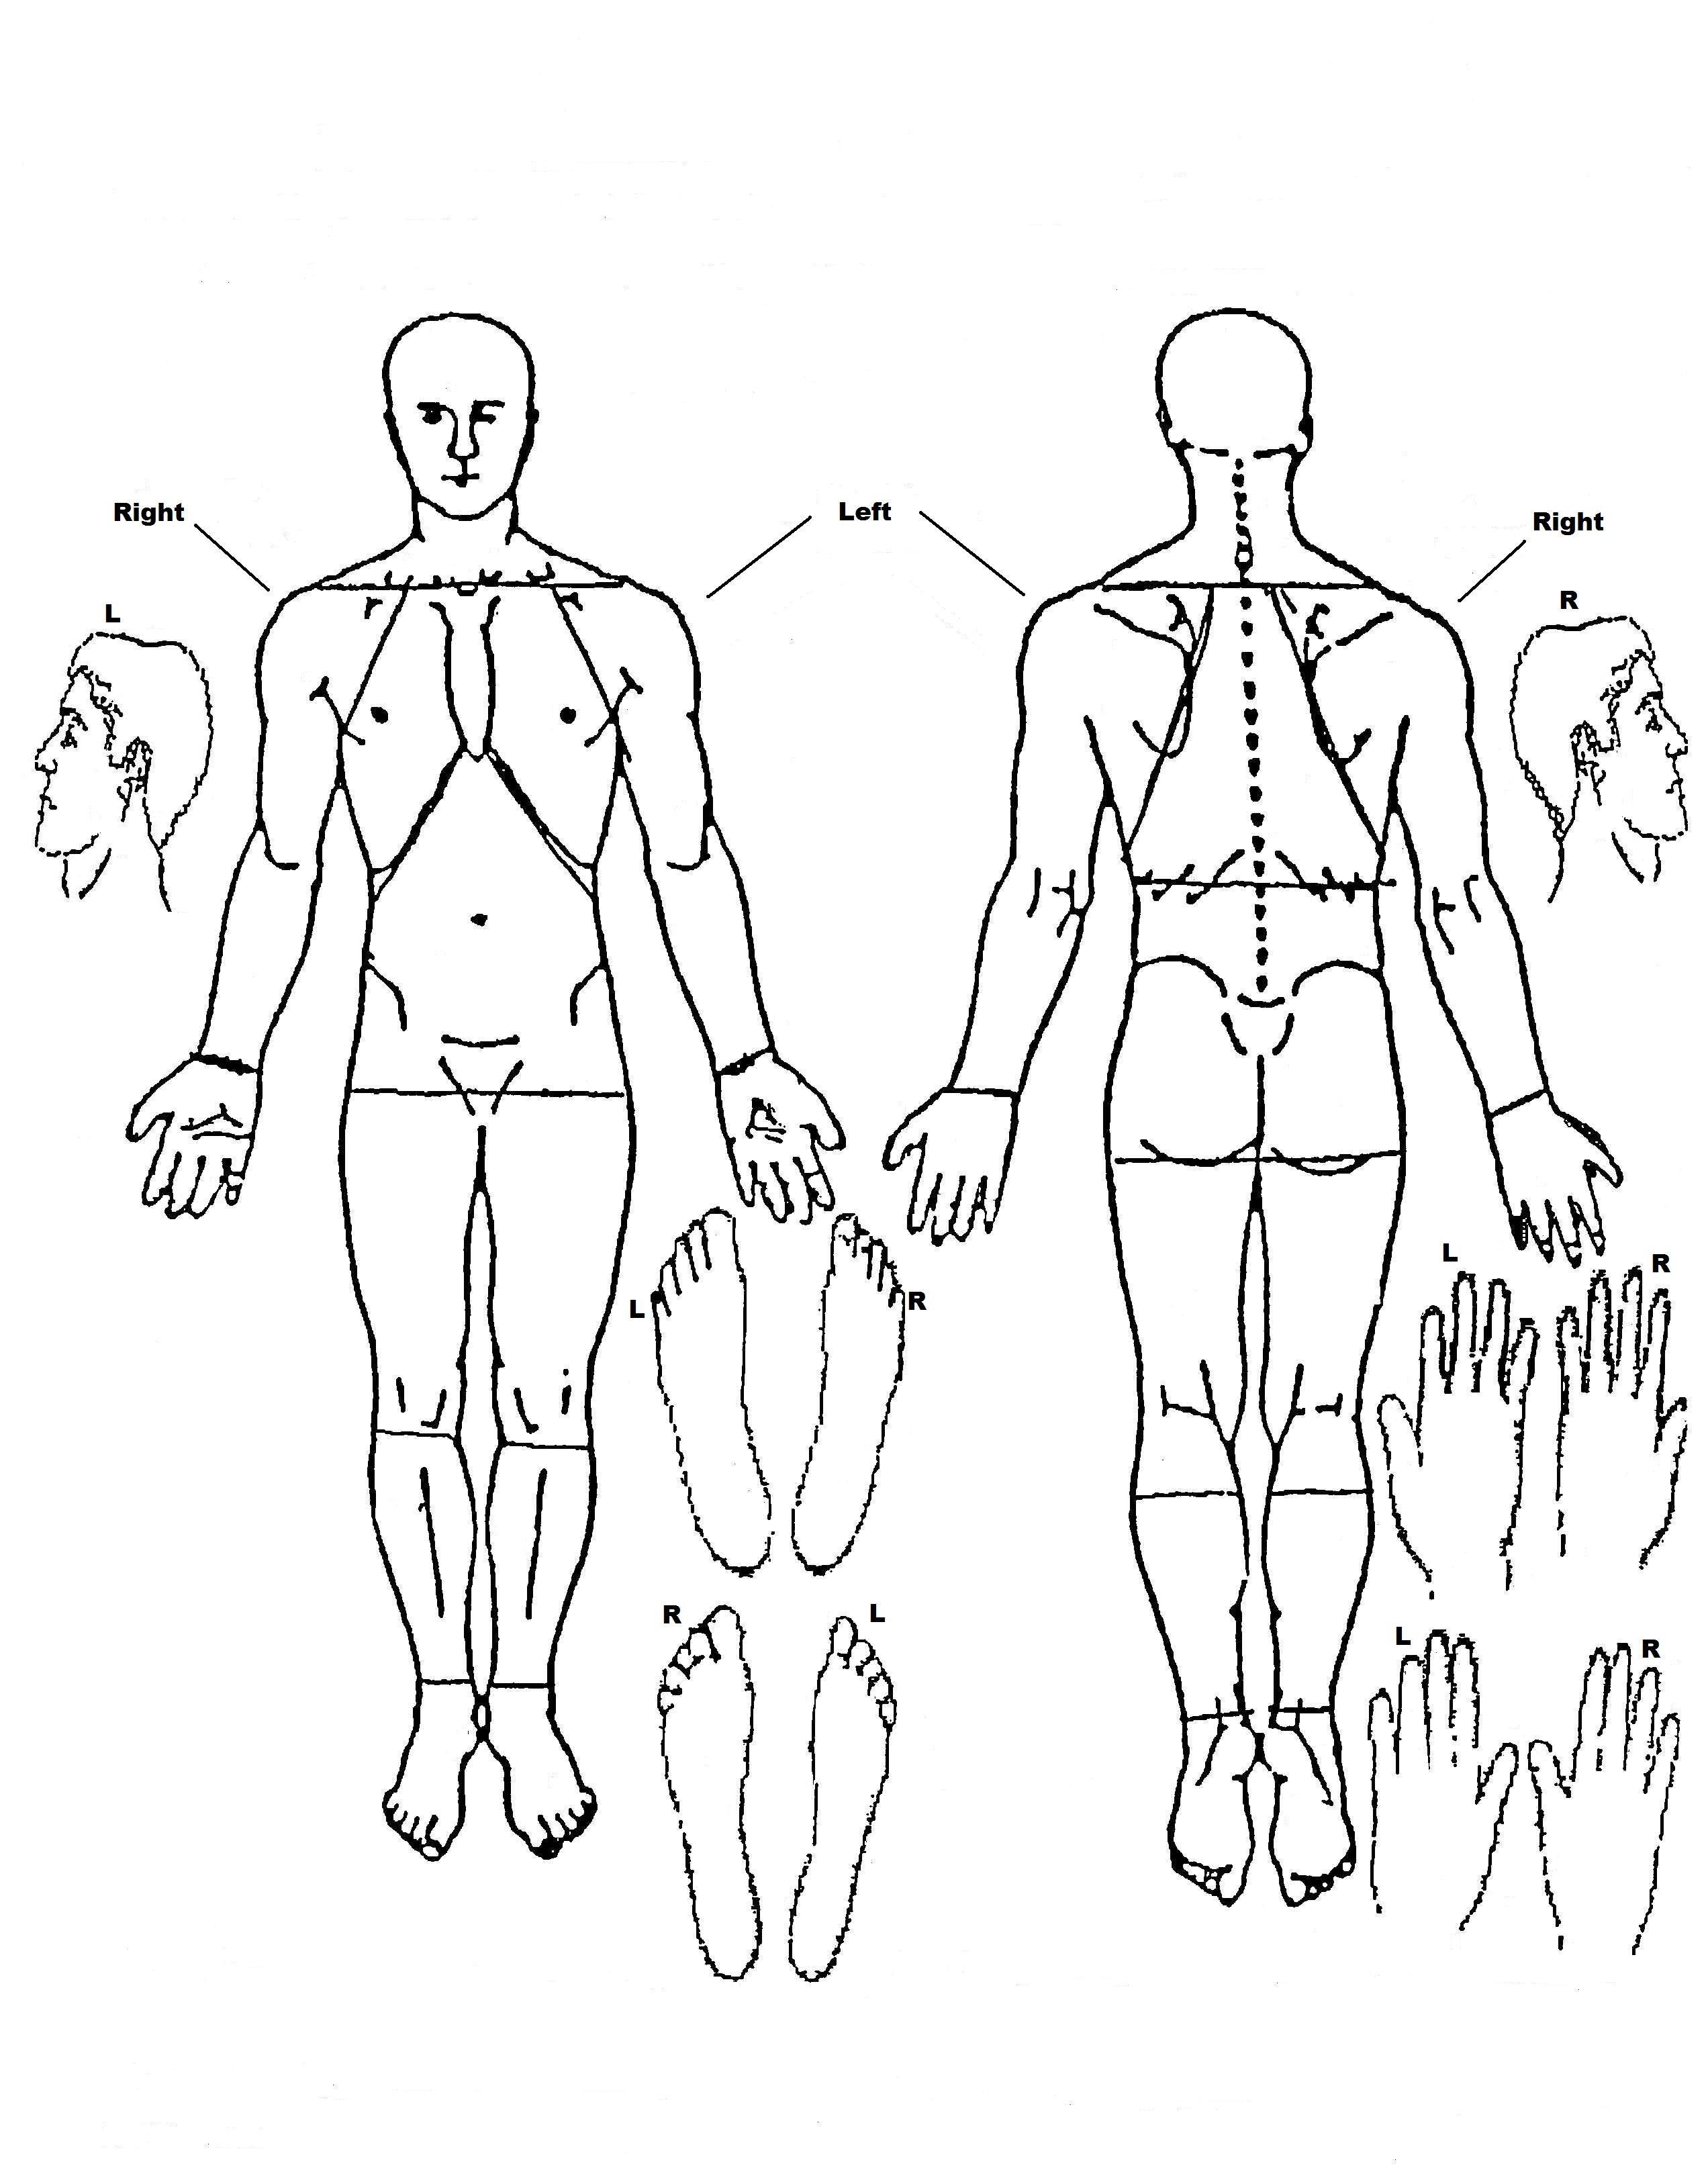 for medical charts body diagrams